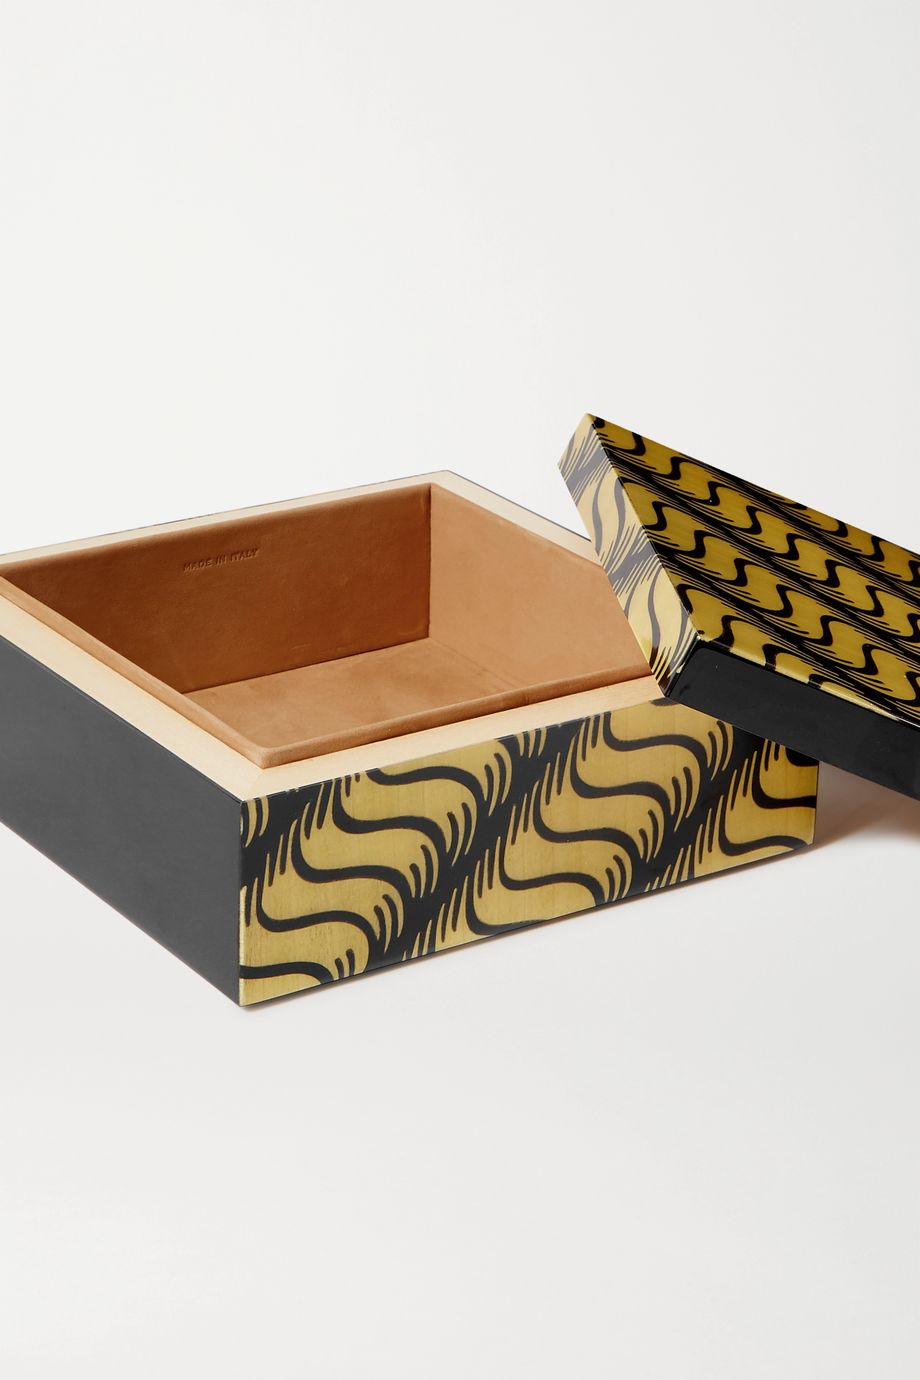 Smythson Marquetry wood box